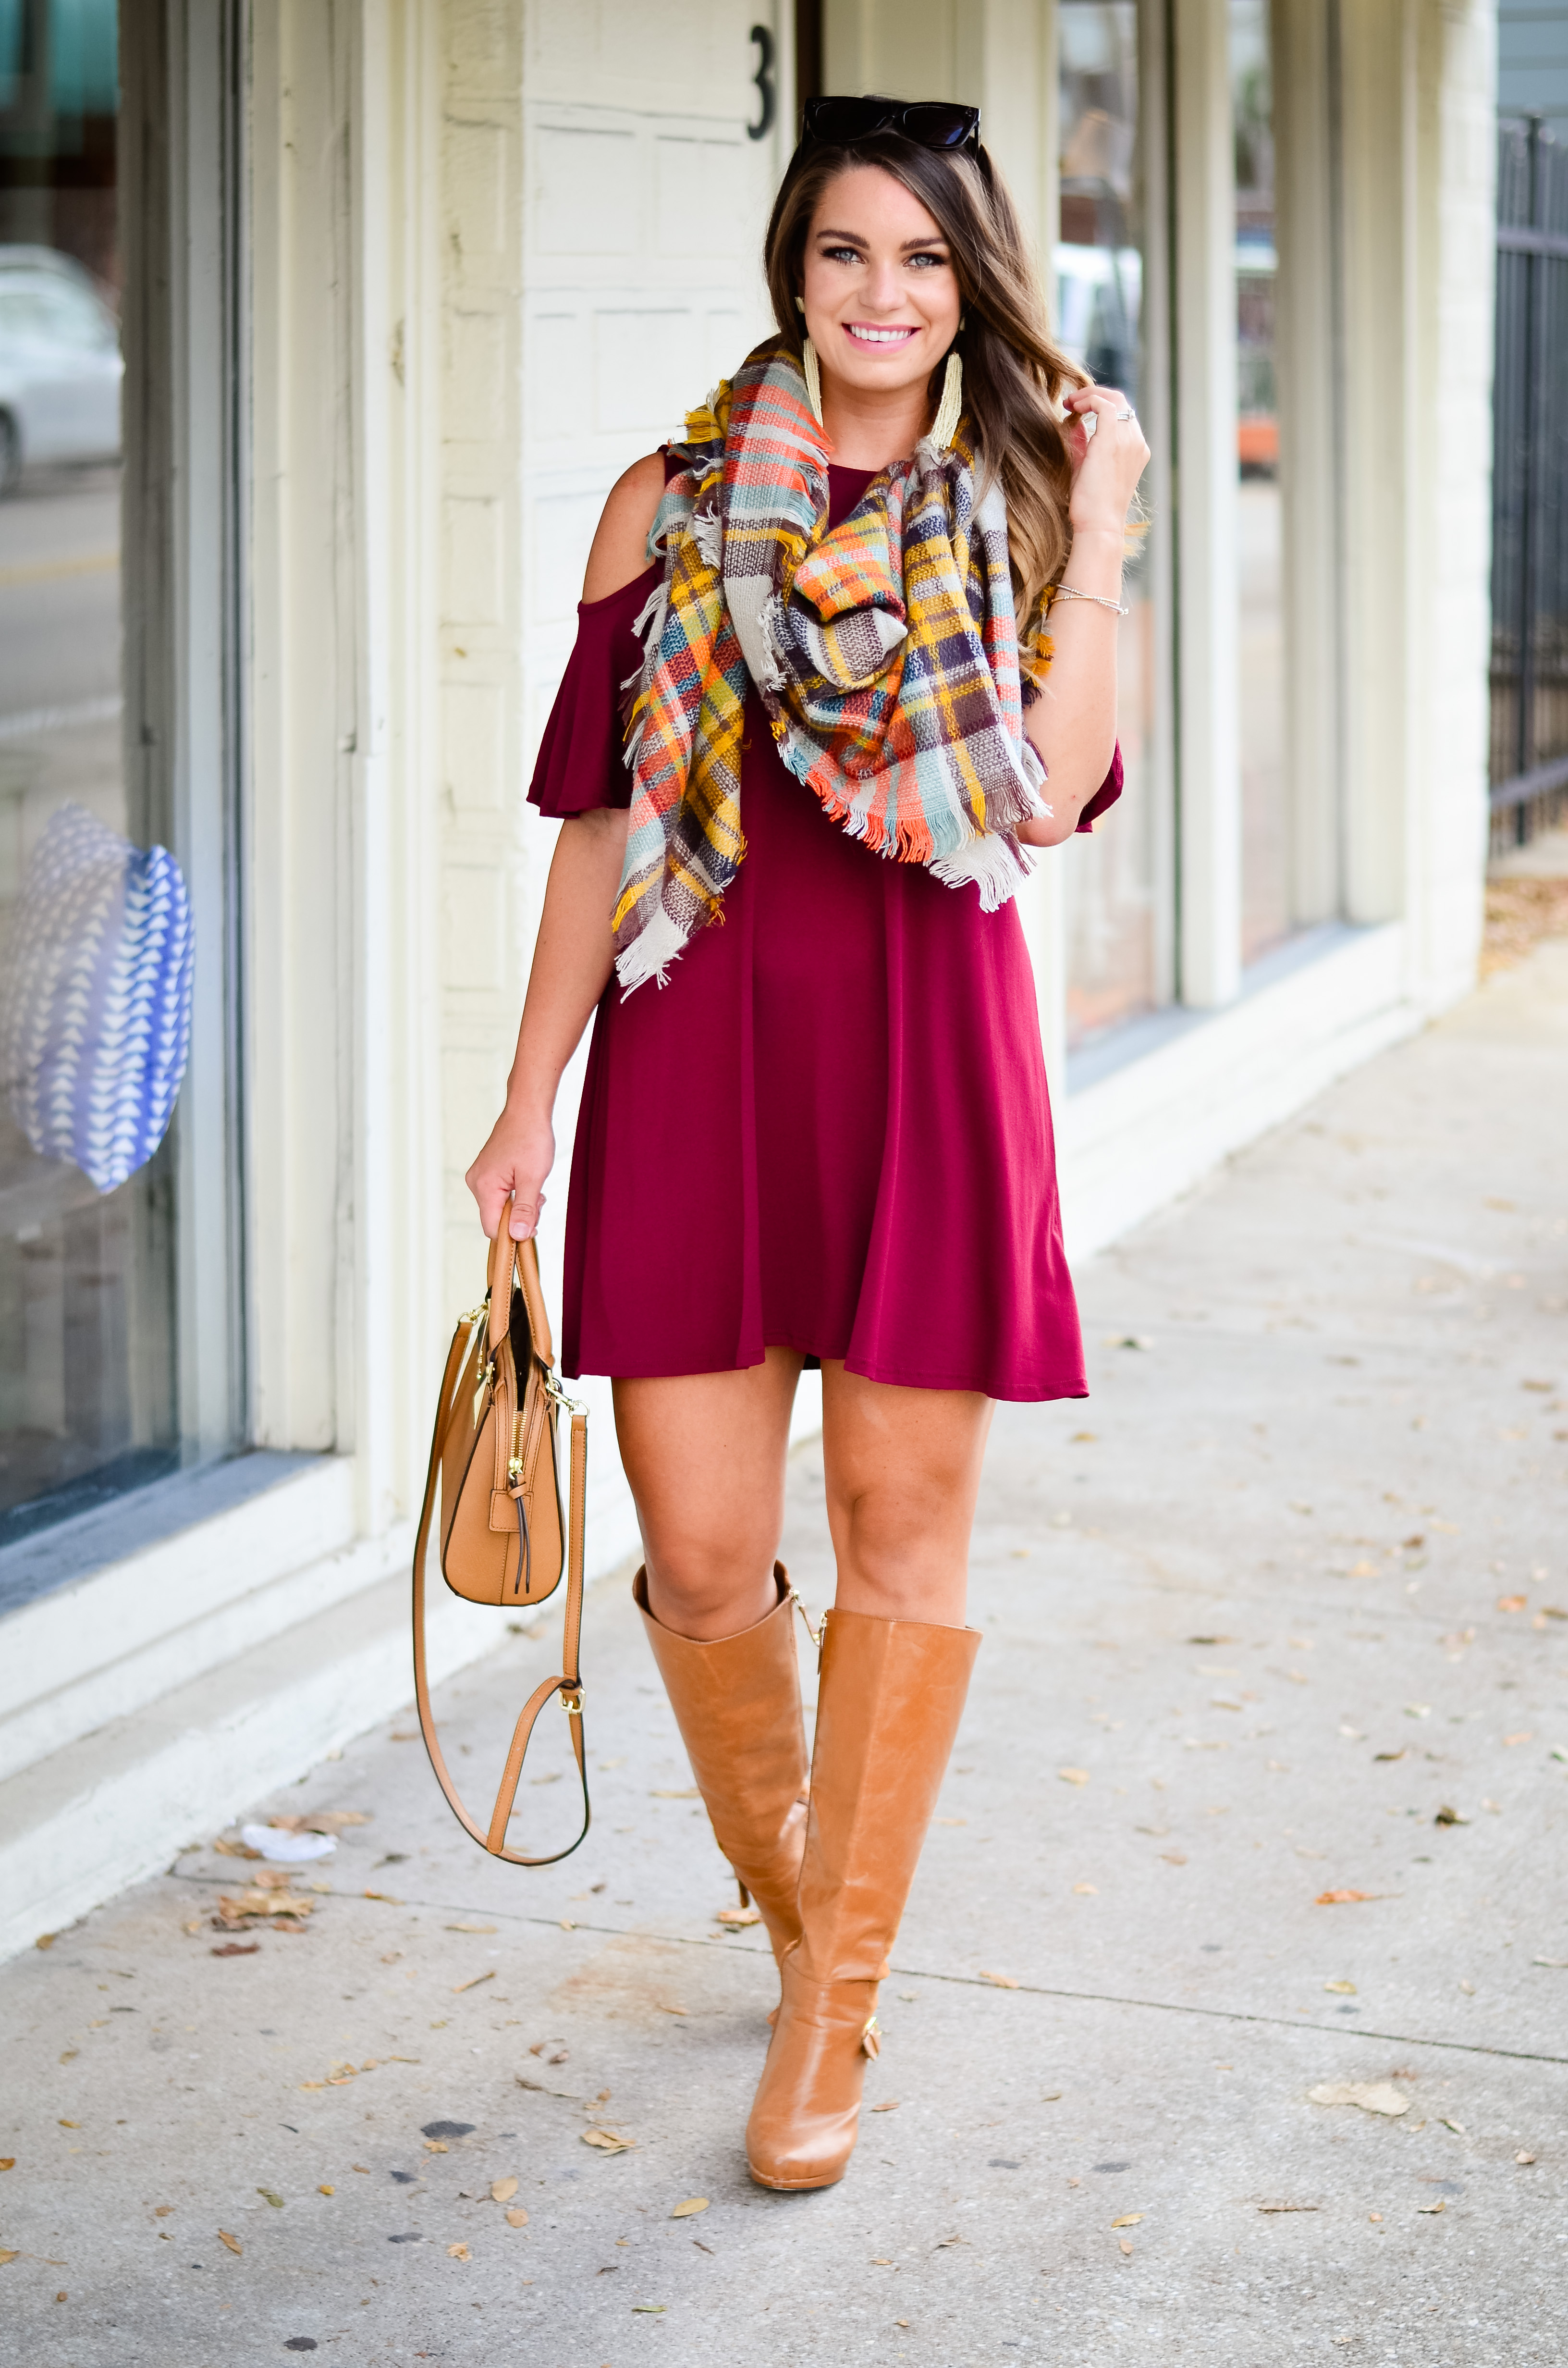 maroon-dress-blanket-scarf-goldfinch-17